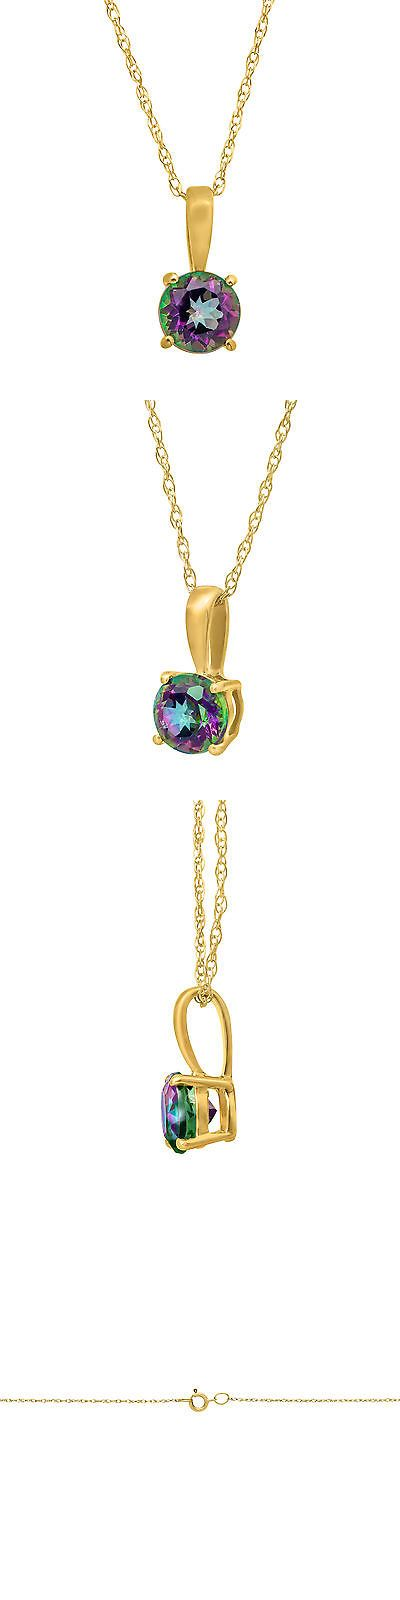 Gemstone 164332: 1 2 Ct Natural Green Mystic Topaz Pendant Necklace In 10K Yellow Gold, 16 -> BUY IT NOW ONLY: $49 on eBay!